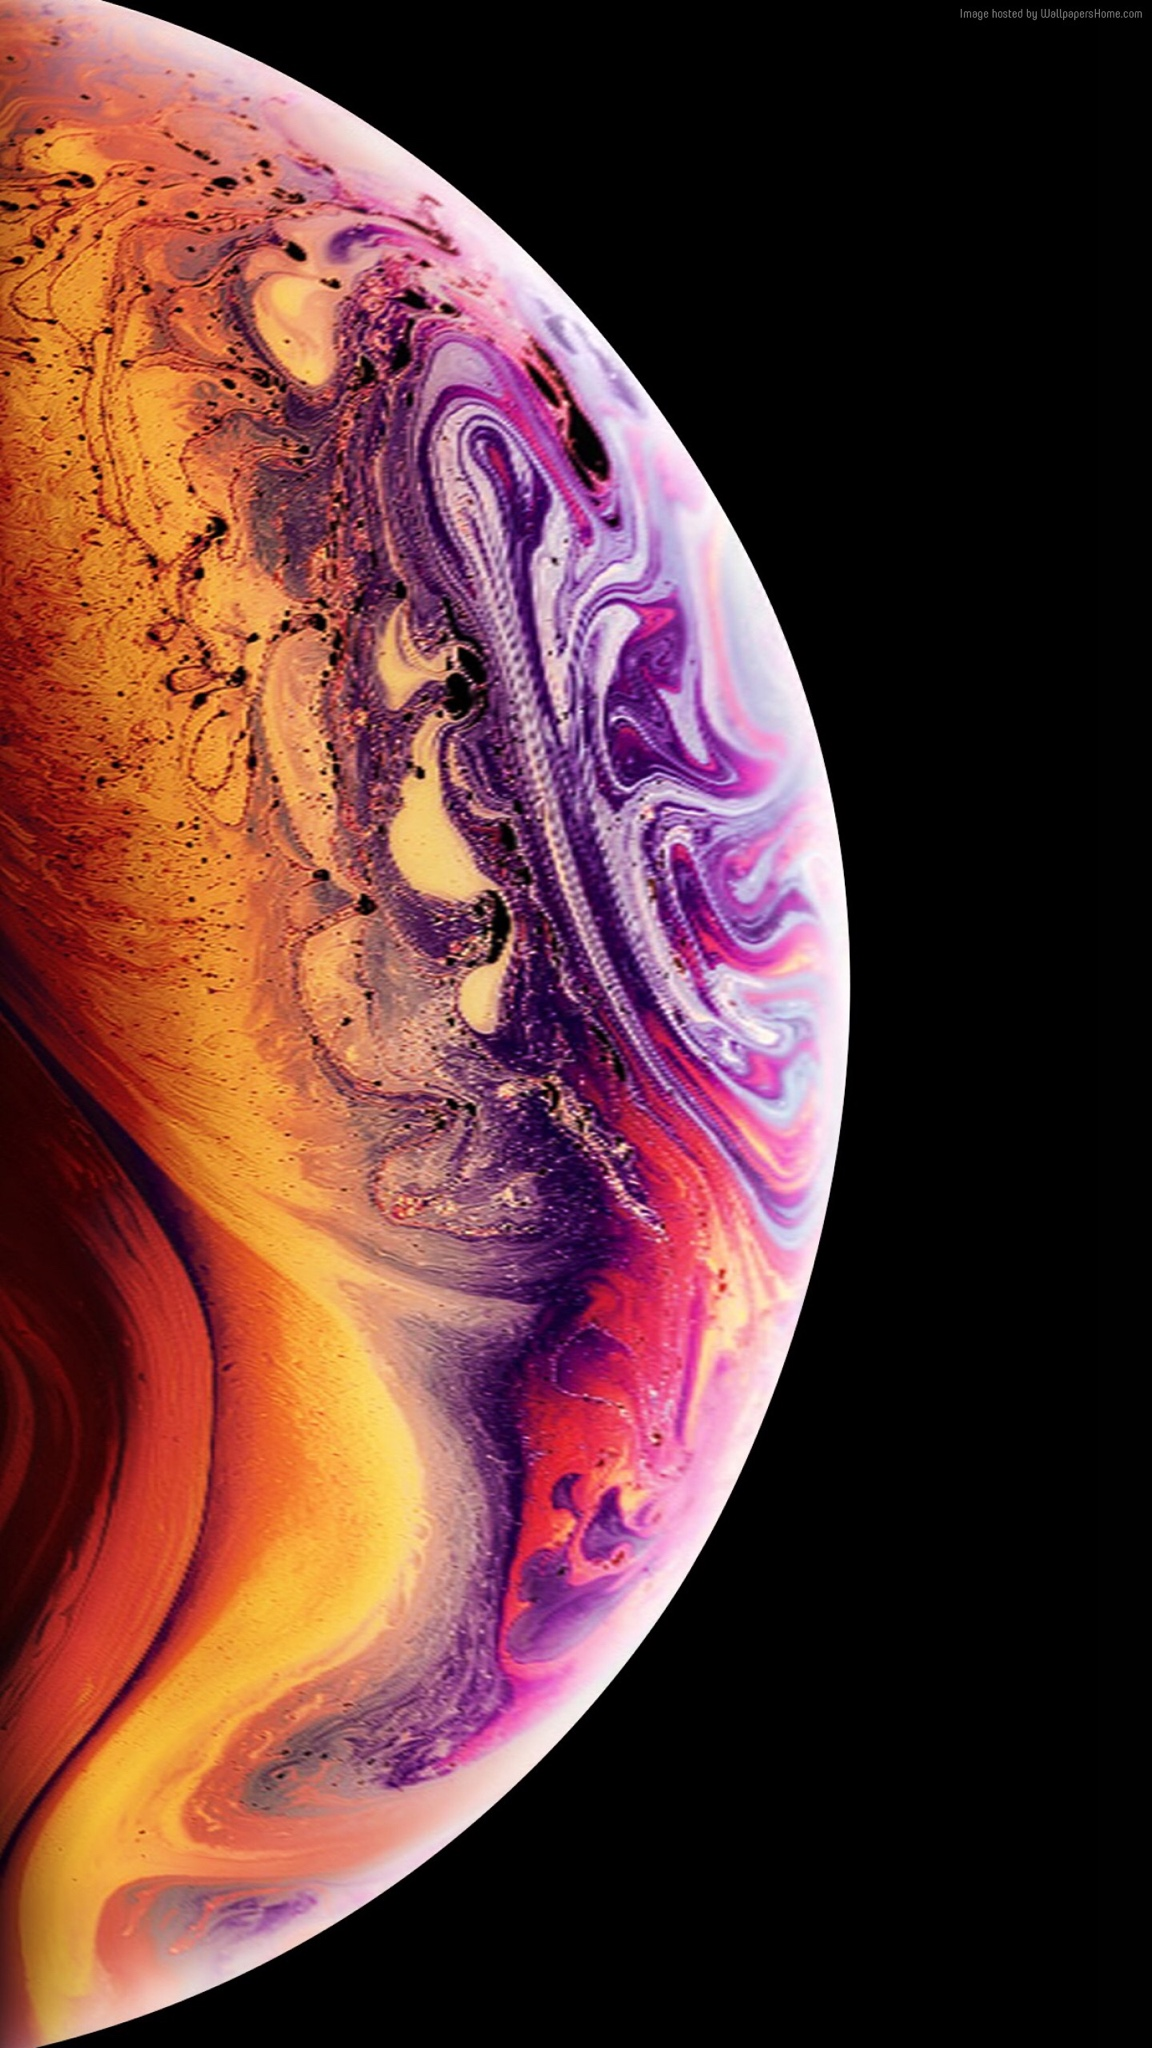 iphone Xs official wallpaper by runawaystudios   Album on Imgur 1152x2048